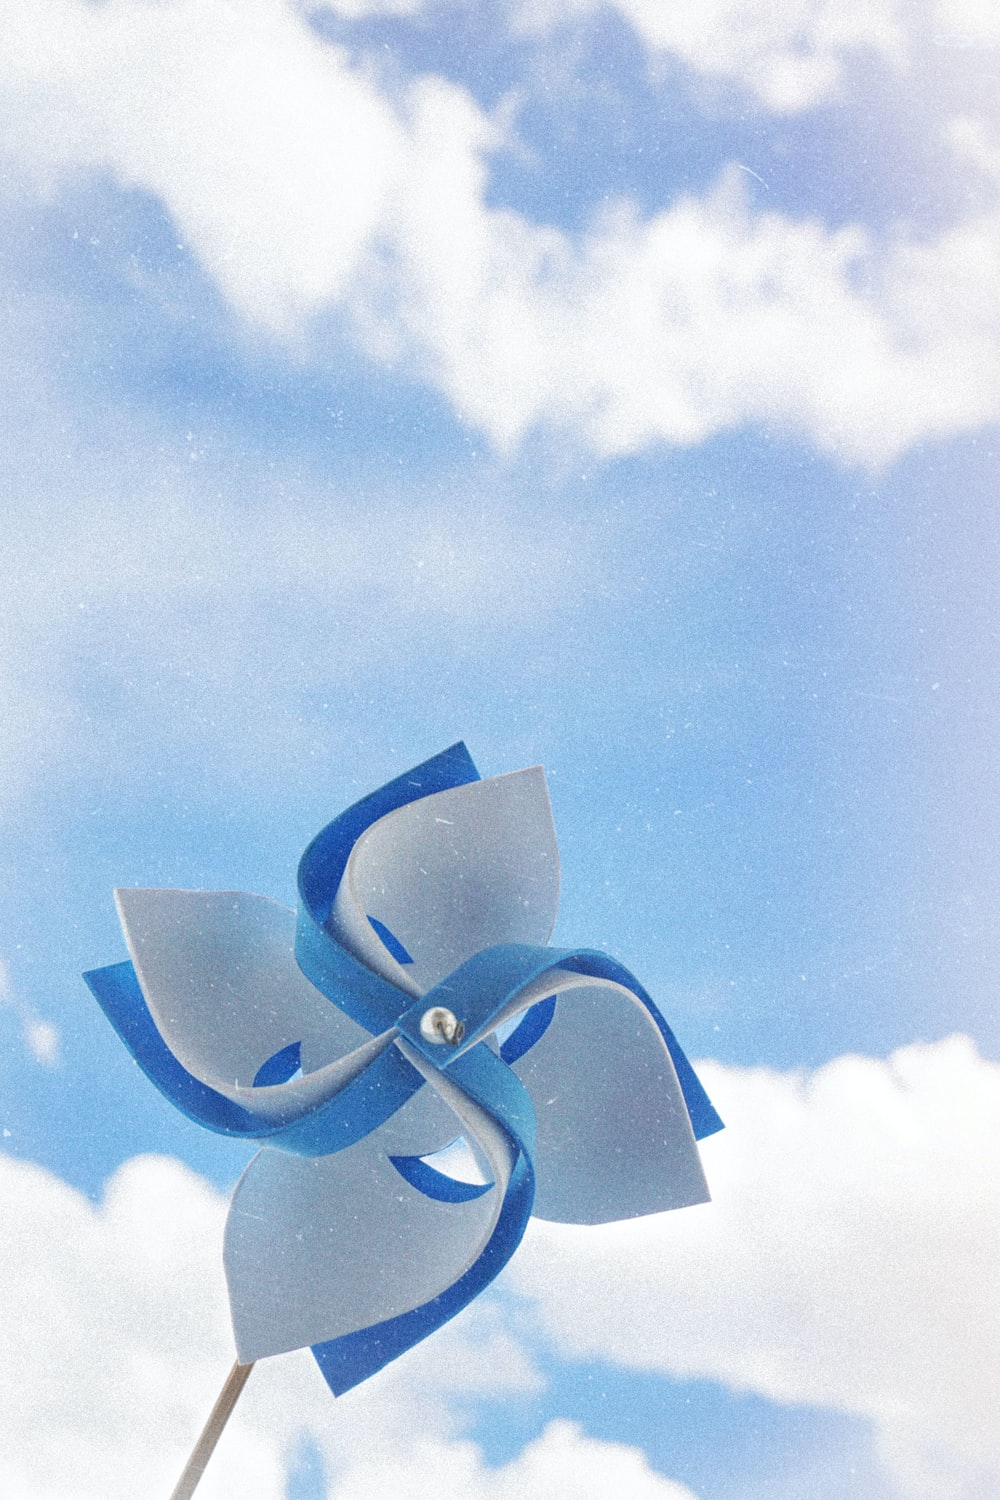 white and blue handheld windmill under cloudy skies